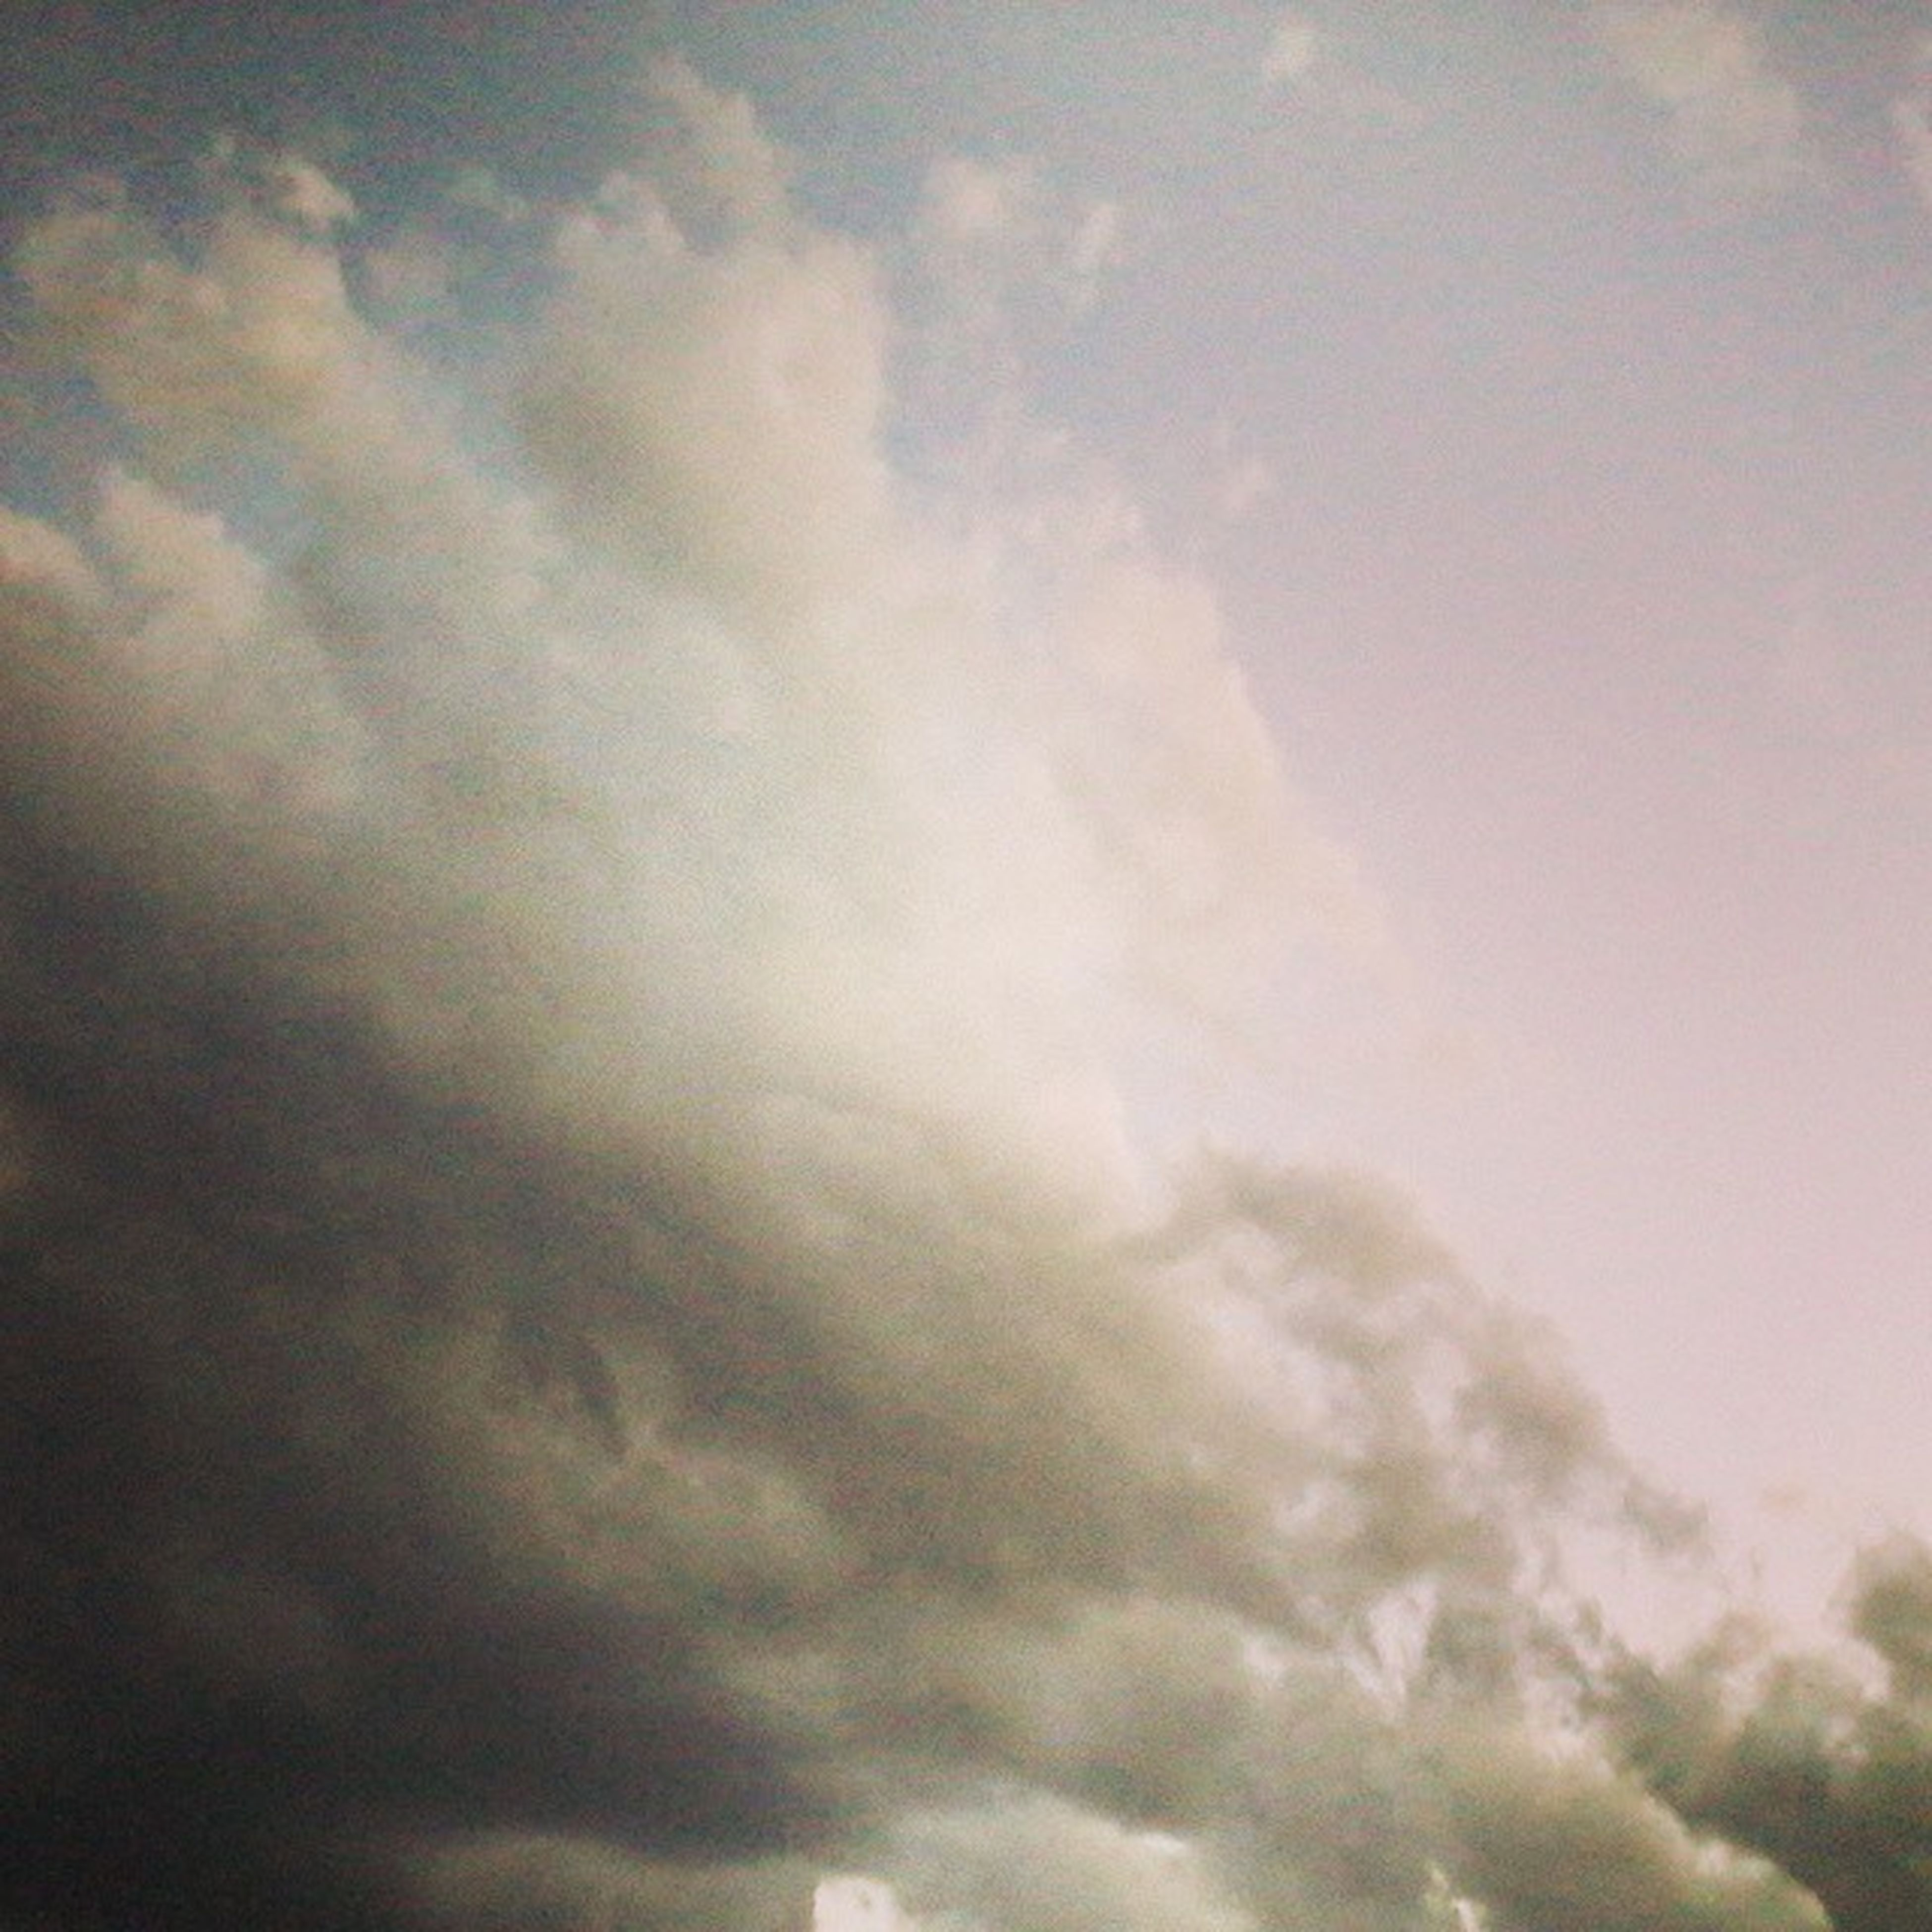 sky, cloud - sky, low angle view, cloudy, sky only, beauty in nature, cloudscape, scenics, tranquility, weather, nature, tranquil scene, cloud, overcast, backgrounds, idyllic, full frame, outdoors, no people, storm cloud